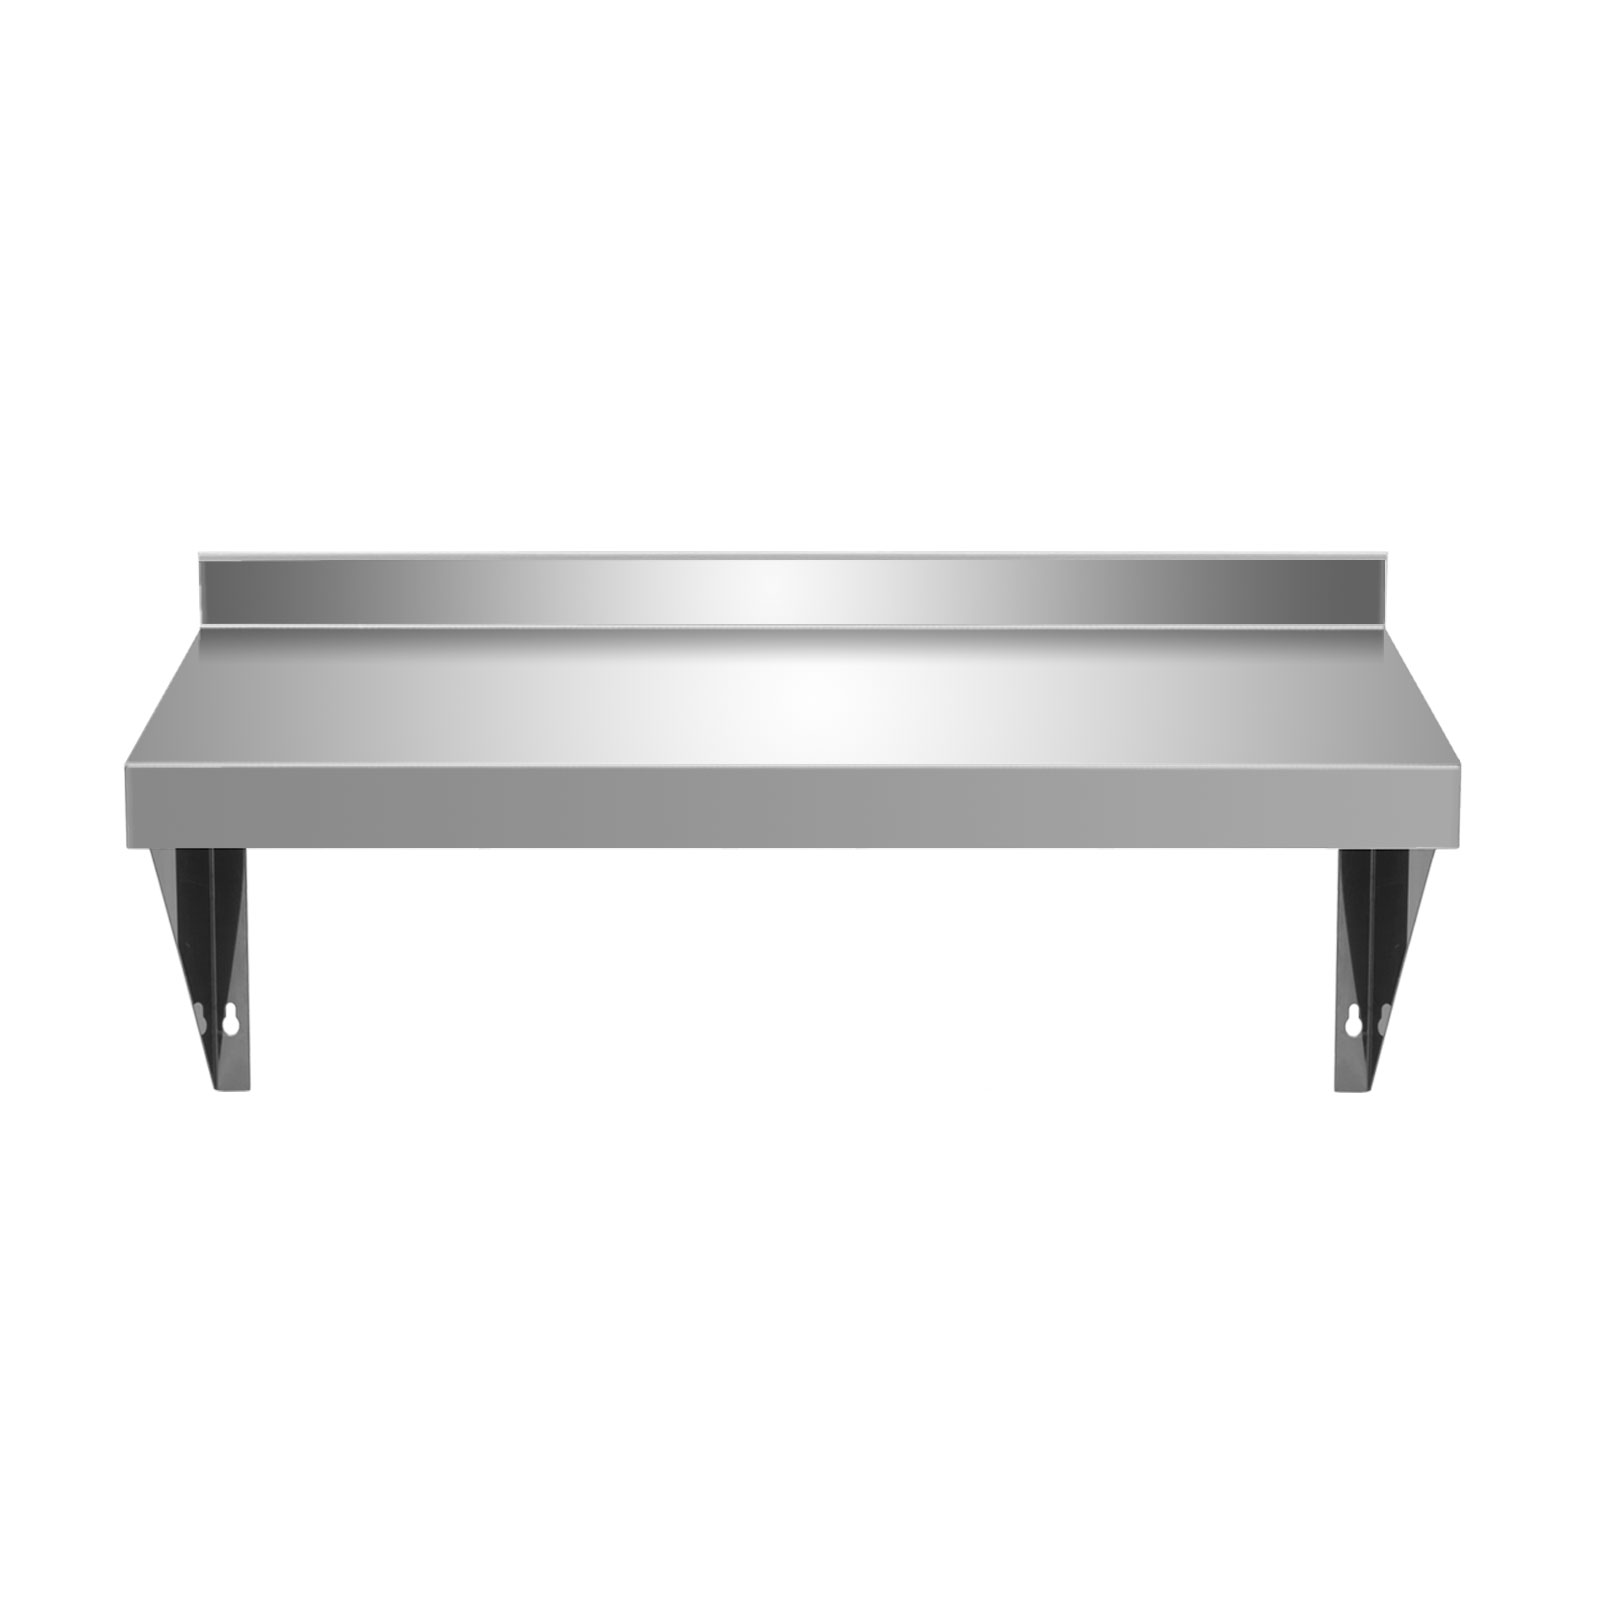 Commercial Stainless Steel Wall Shelf With Brackets